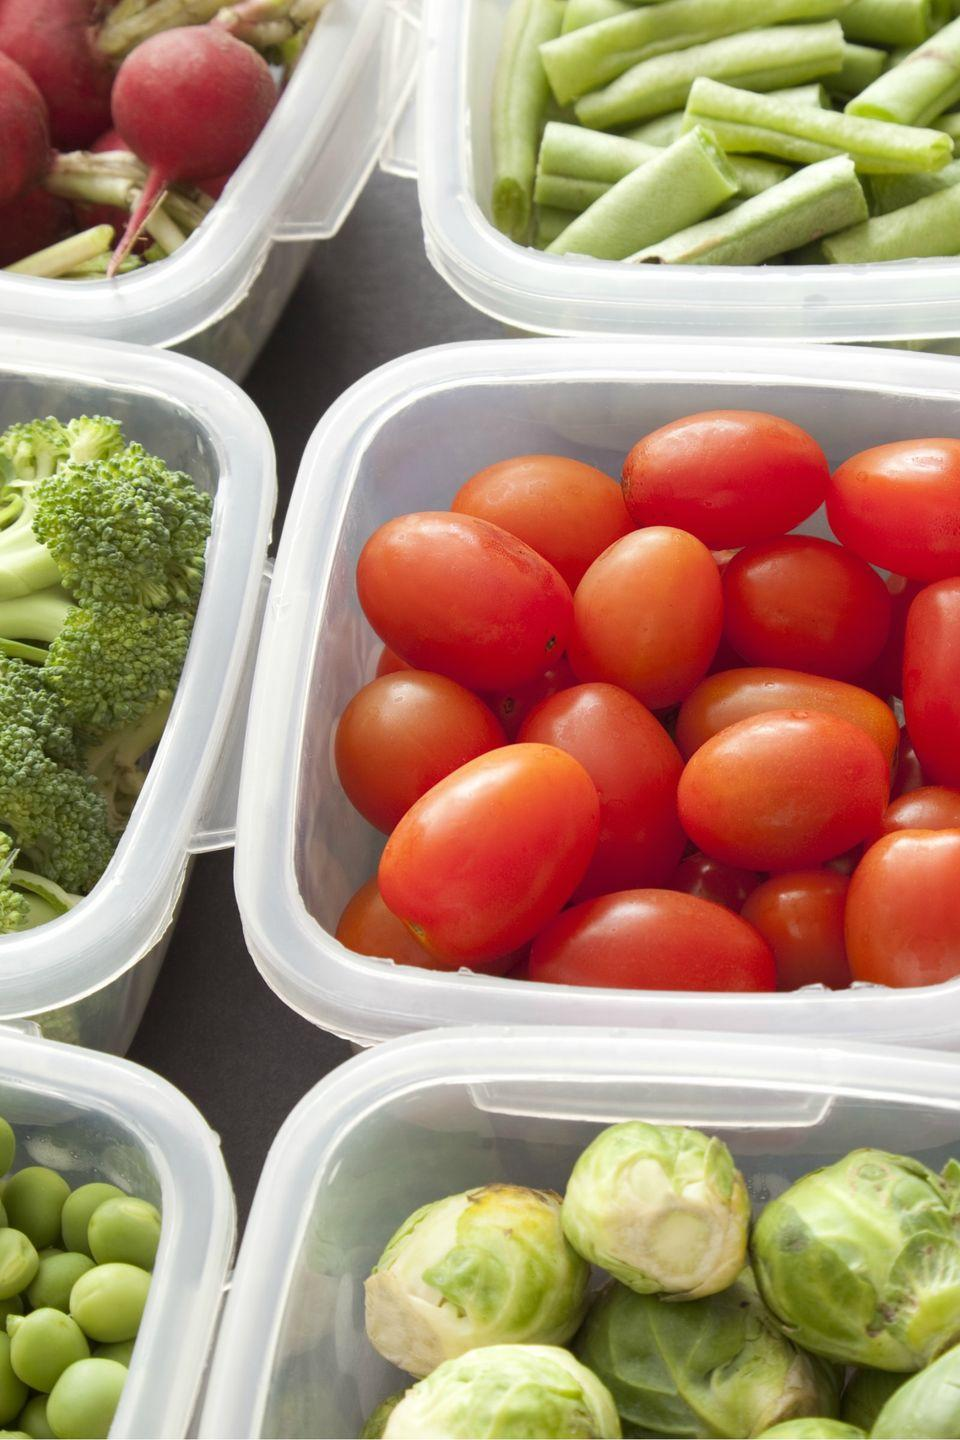 """<p>Trade round food storage containers for <span class=""""itxtrst itxtrsta itxthook"""">more efficient, stackable</span> square and rectangular ones, says DeBroff.</p><p><strong><a class=""""link rapid-noclick-resp"""" href=""""https://www.amazon.com/SHOMOTE-Containers-Stackable-Microwave-Dishwasher/dp/B08GCLRHCG/ref=pd_pb_ss_no_hpb_2/138-2633406-5587159?_encoding=UTF8&pd_rd_i=B08GCLRHCG&pd_rd_r=da65c664-5441-4670-9b01-ec7e07415885&pd_rd_w=Z42C2&pd_rd_wg=tQp7W&pf_rd_p=3afcde63-a32e-48e5-b3ee-3ab9288b96ca&pf_rd_r=3SEAENTZ9ZYE5107ZEYW&psc=1&refRID=3SEAENTZ9ZYE5107ZEYW&tag=syn-yahoo-20&ascsubtag=%5Bartid%7C10070.g.3310%5Bsrc%7Cyahoo-us"""" rel=""""nofollow noopener"""" target=""""_blank"""" data-ylk=""""slk:SHOP STORAGE CONTAINERS"""">SHOP STORAGE CONTAINERS</a></strong></p>"""